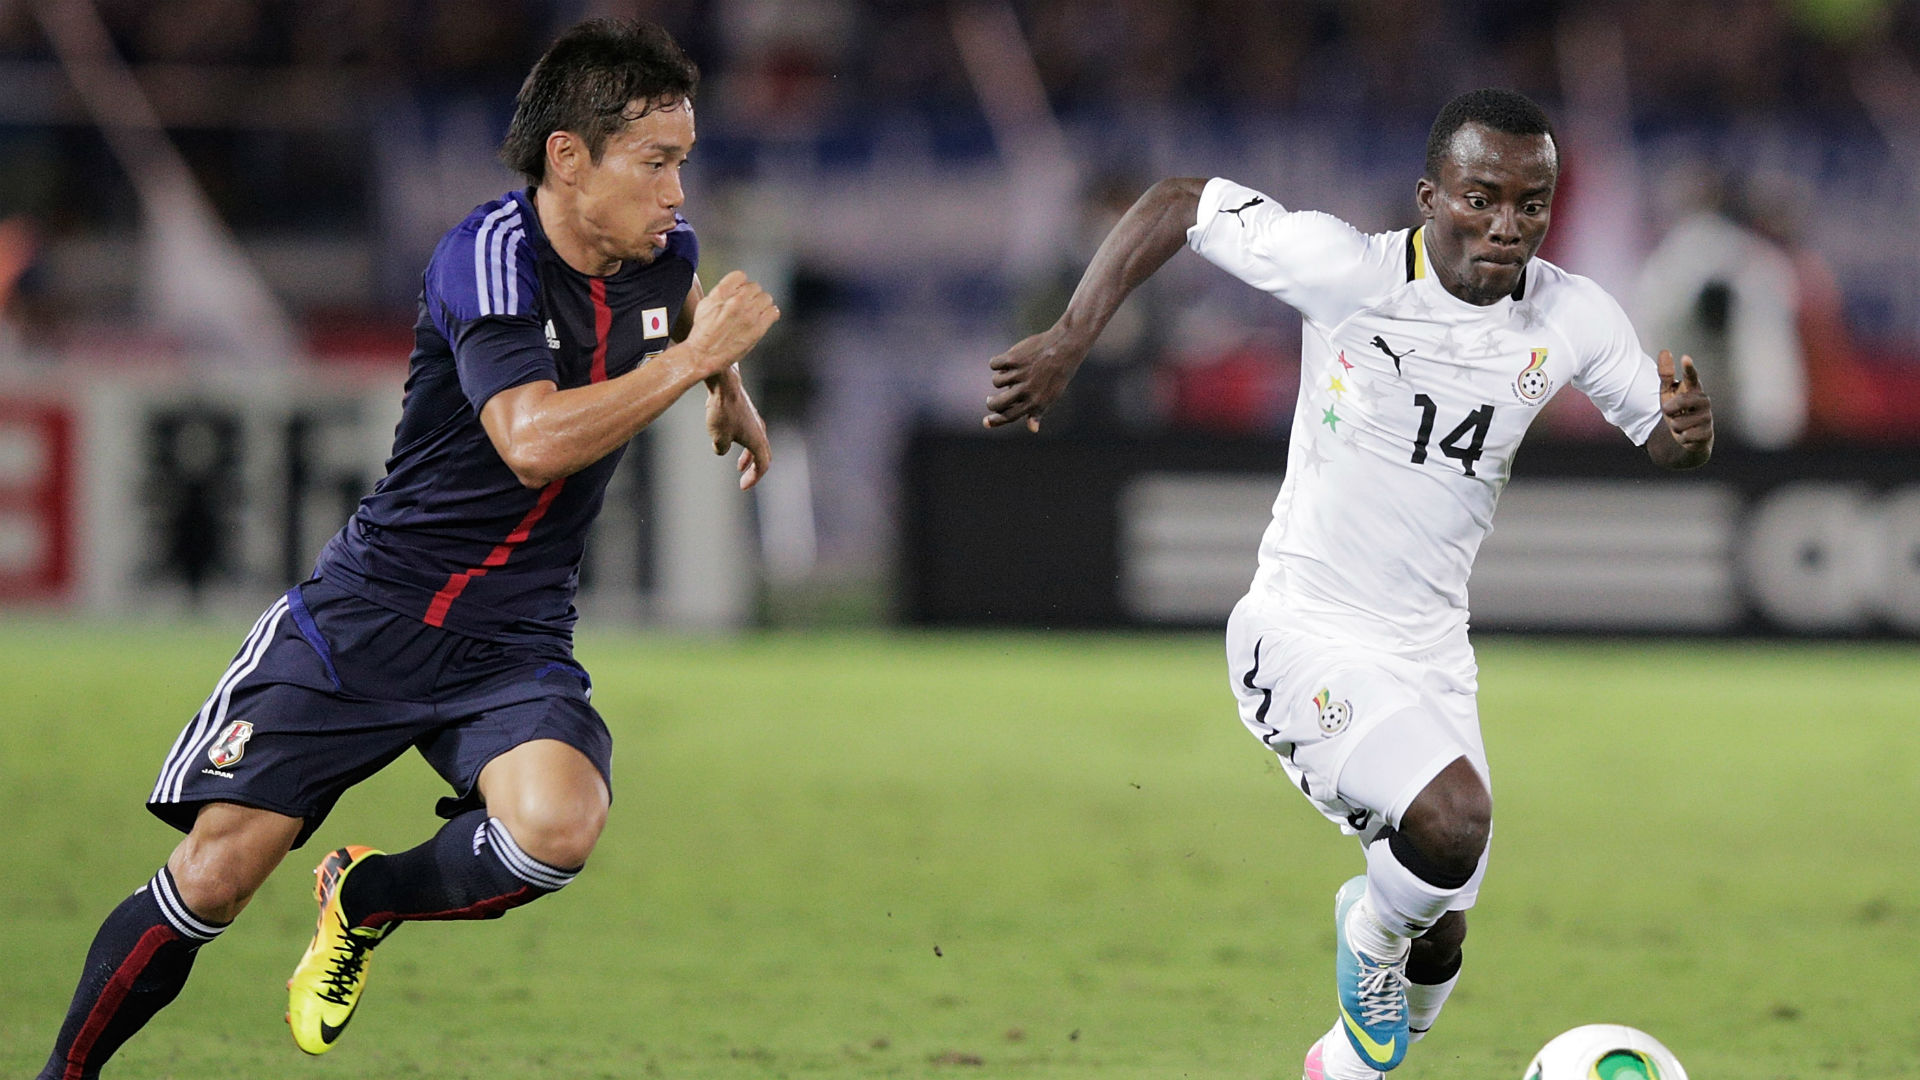 'I couldn't speak French fluently' – Asante on switching from Burkina Faso to Ghana